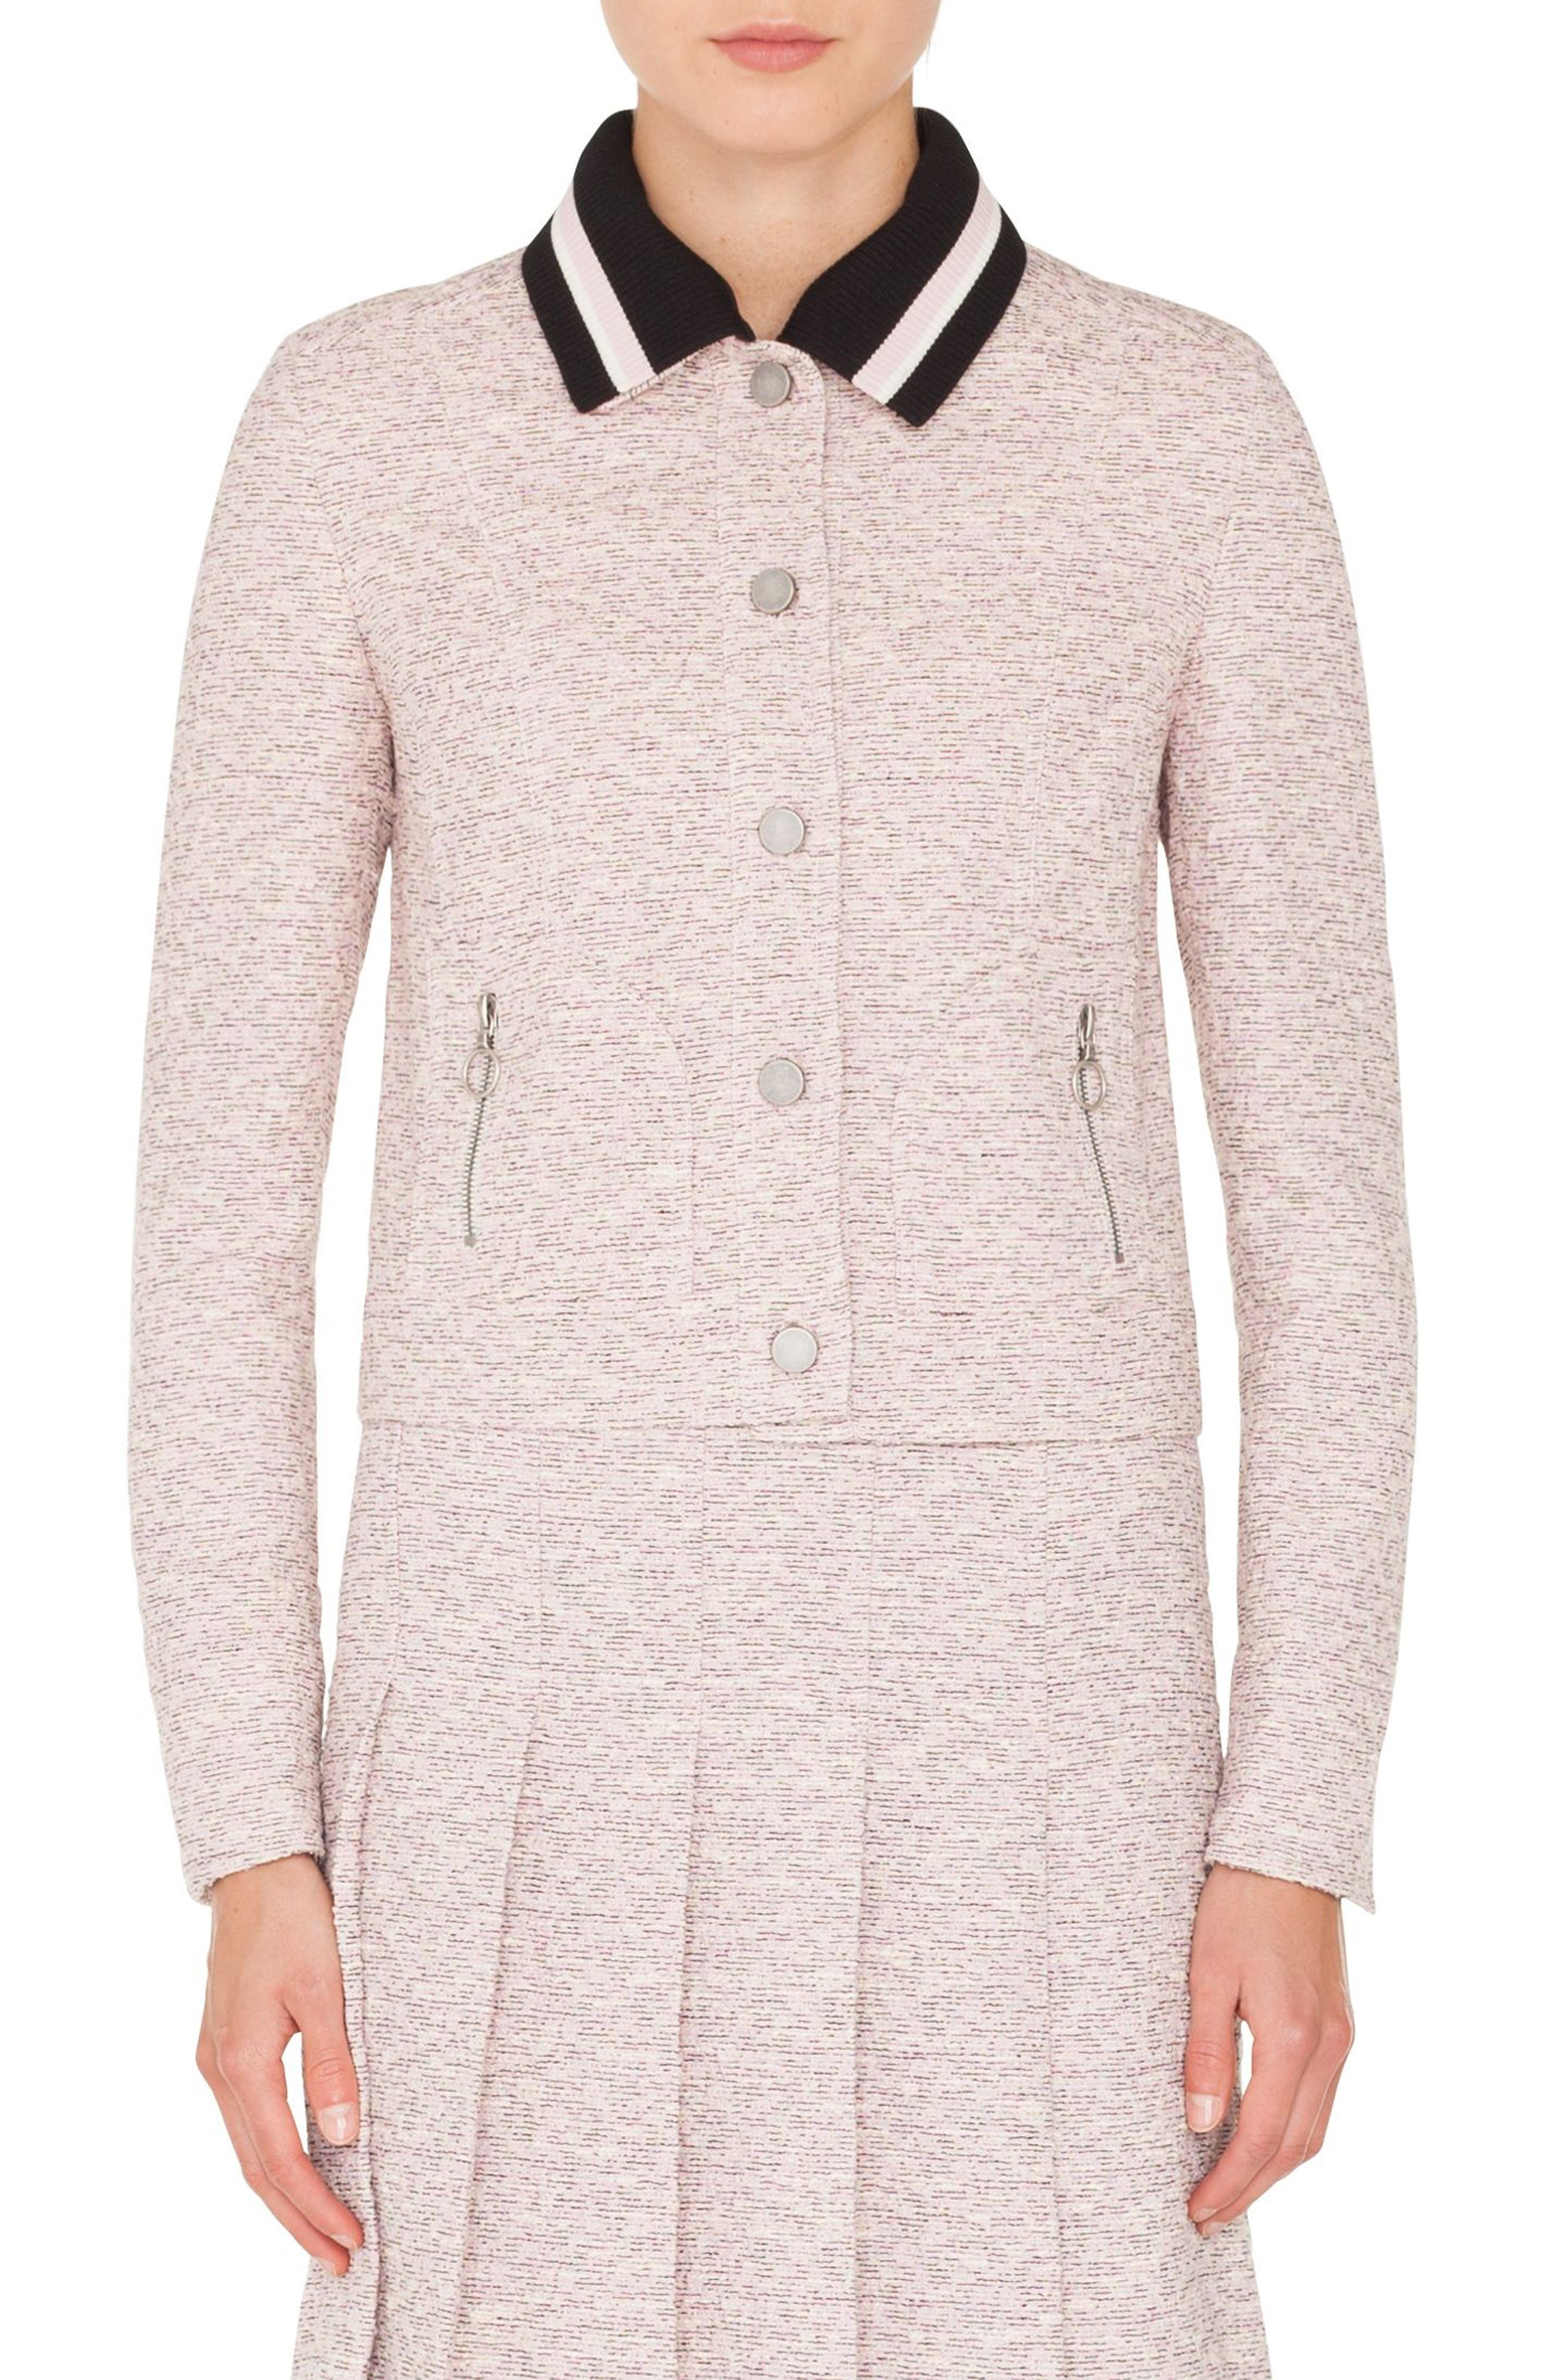 Button Front Tweed Jacket with Detachable Knit Collar,                             Main thumbnail 1, color,                             ROSE - CREAM -